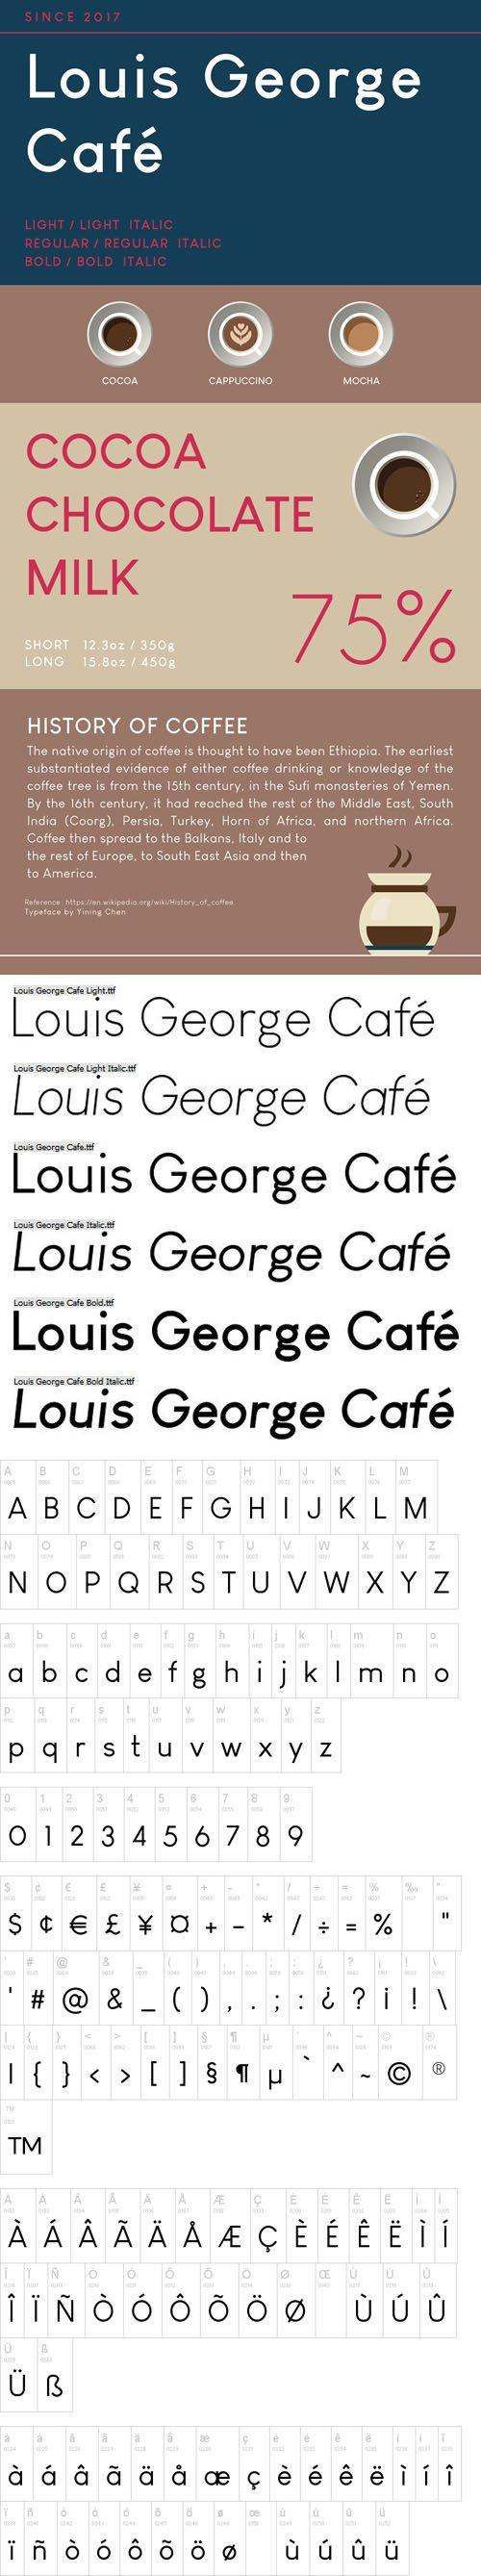 Louis George Cafe Sans serif Font [6-Weights]